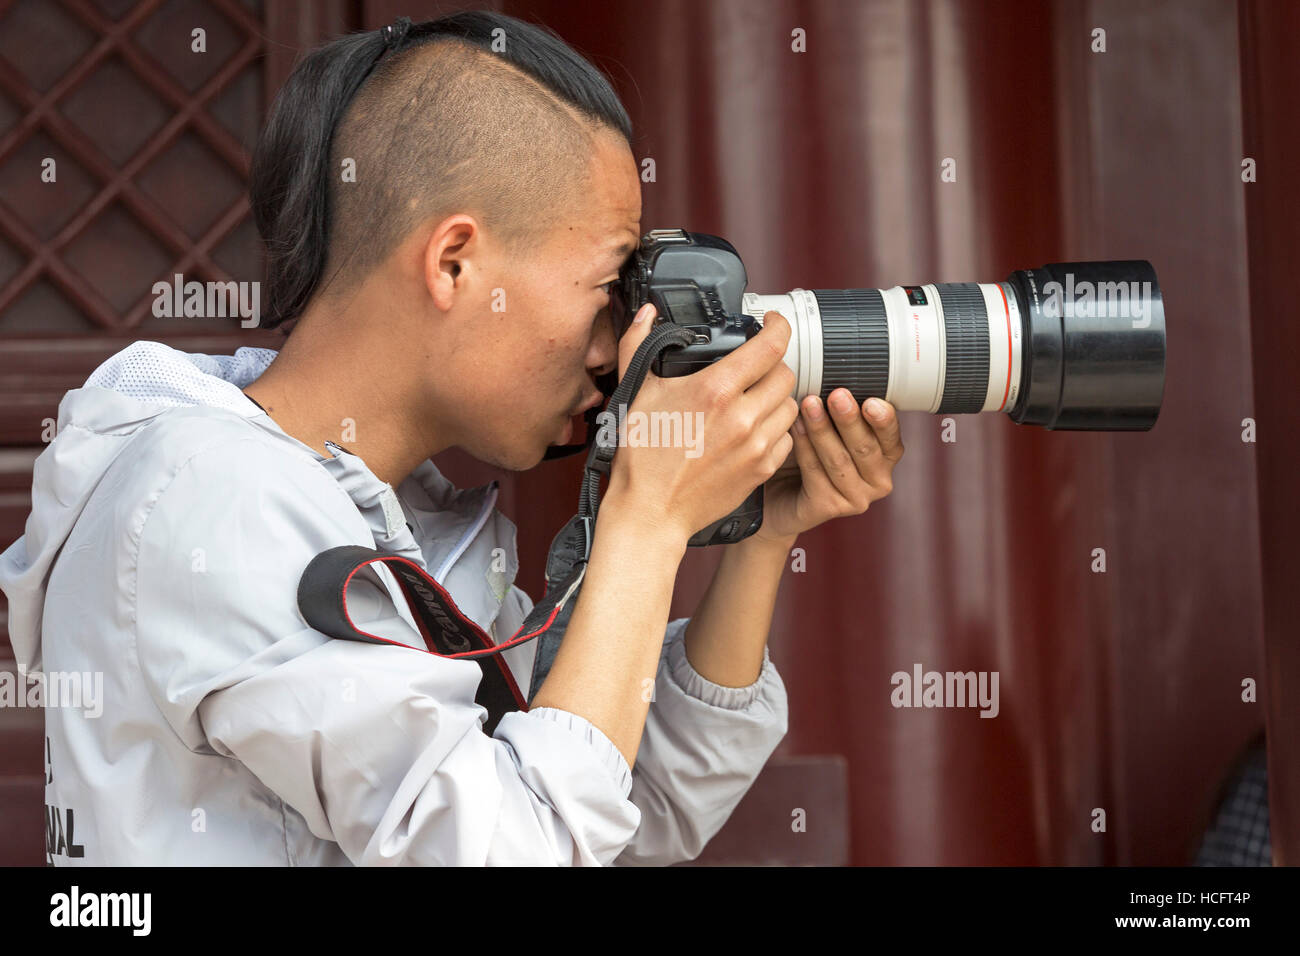 Chinese professional photographer with camera, Xian, China - Stock Image